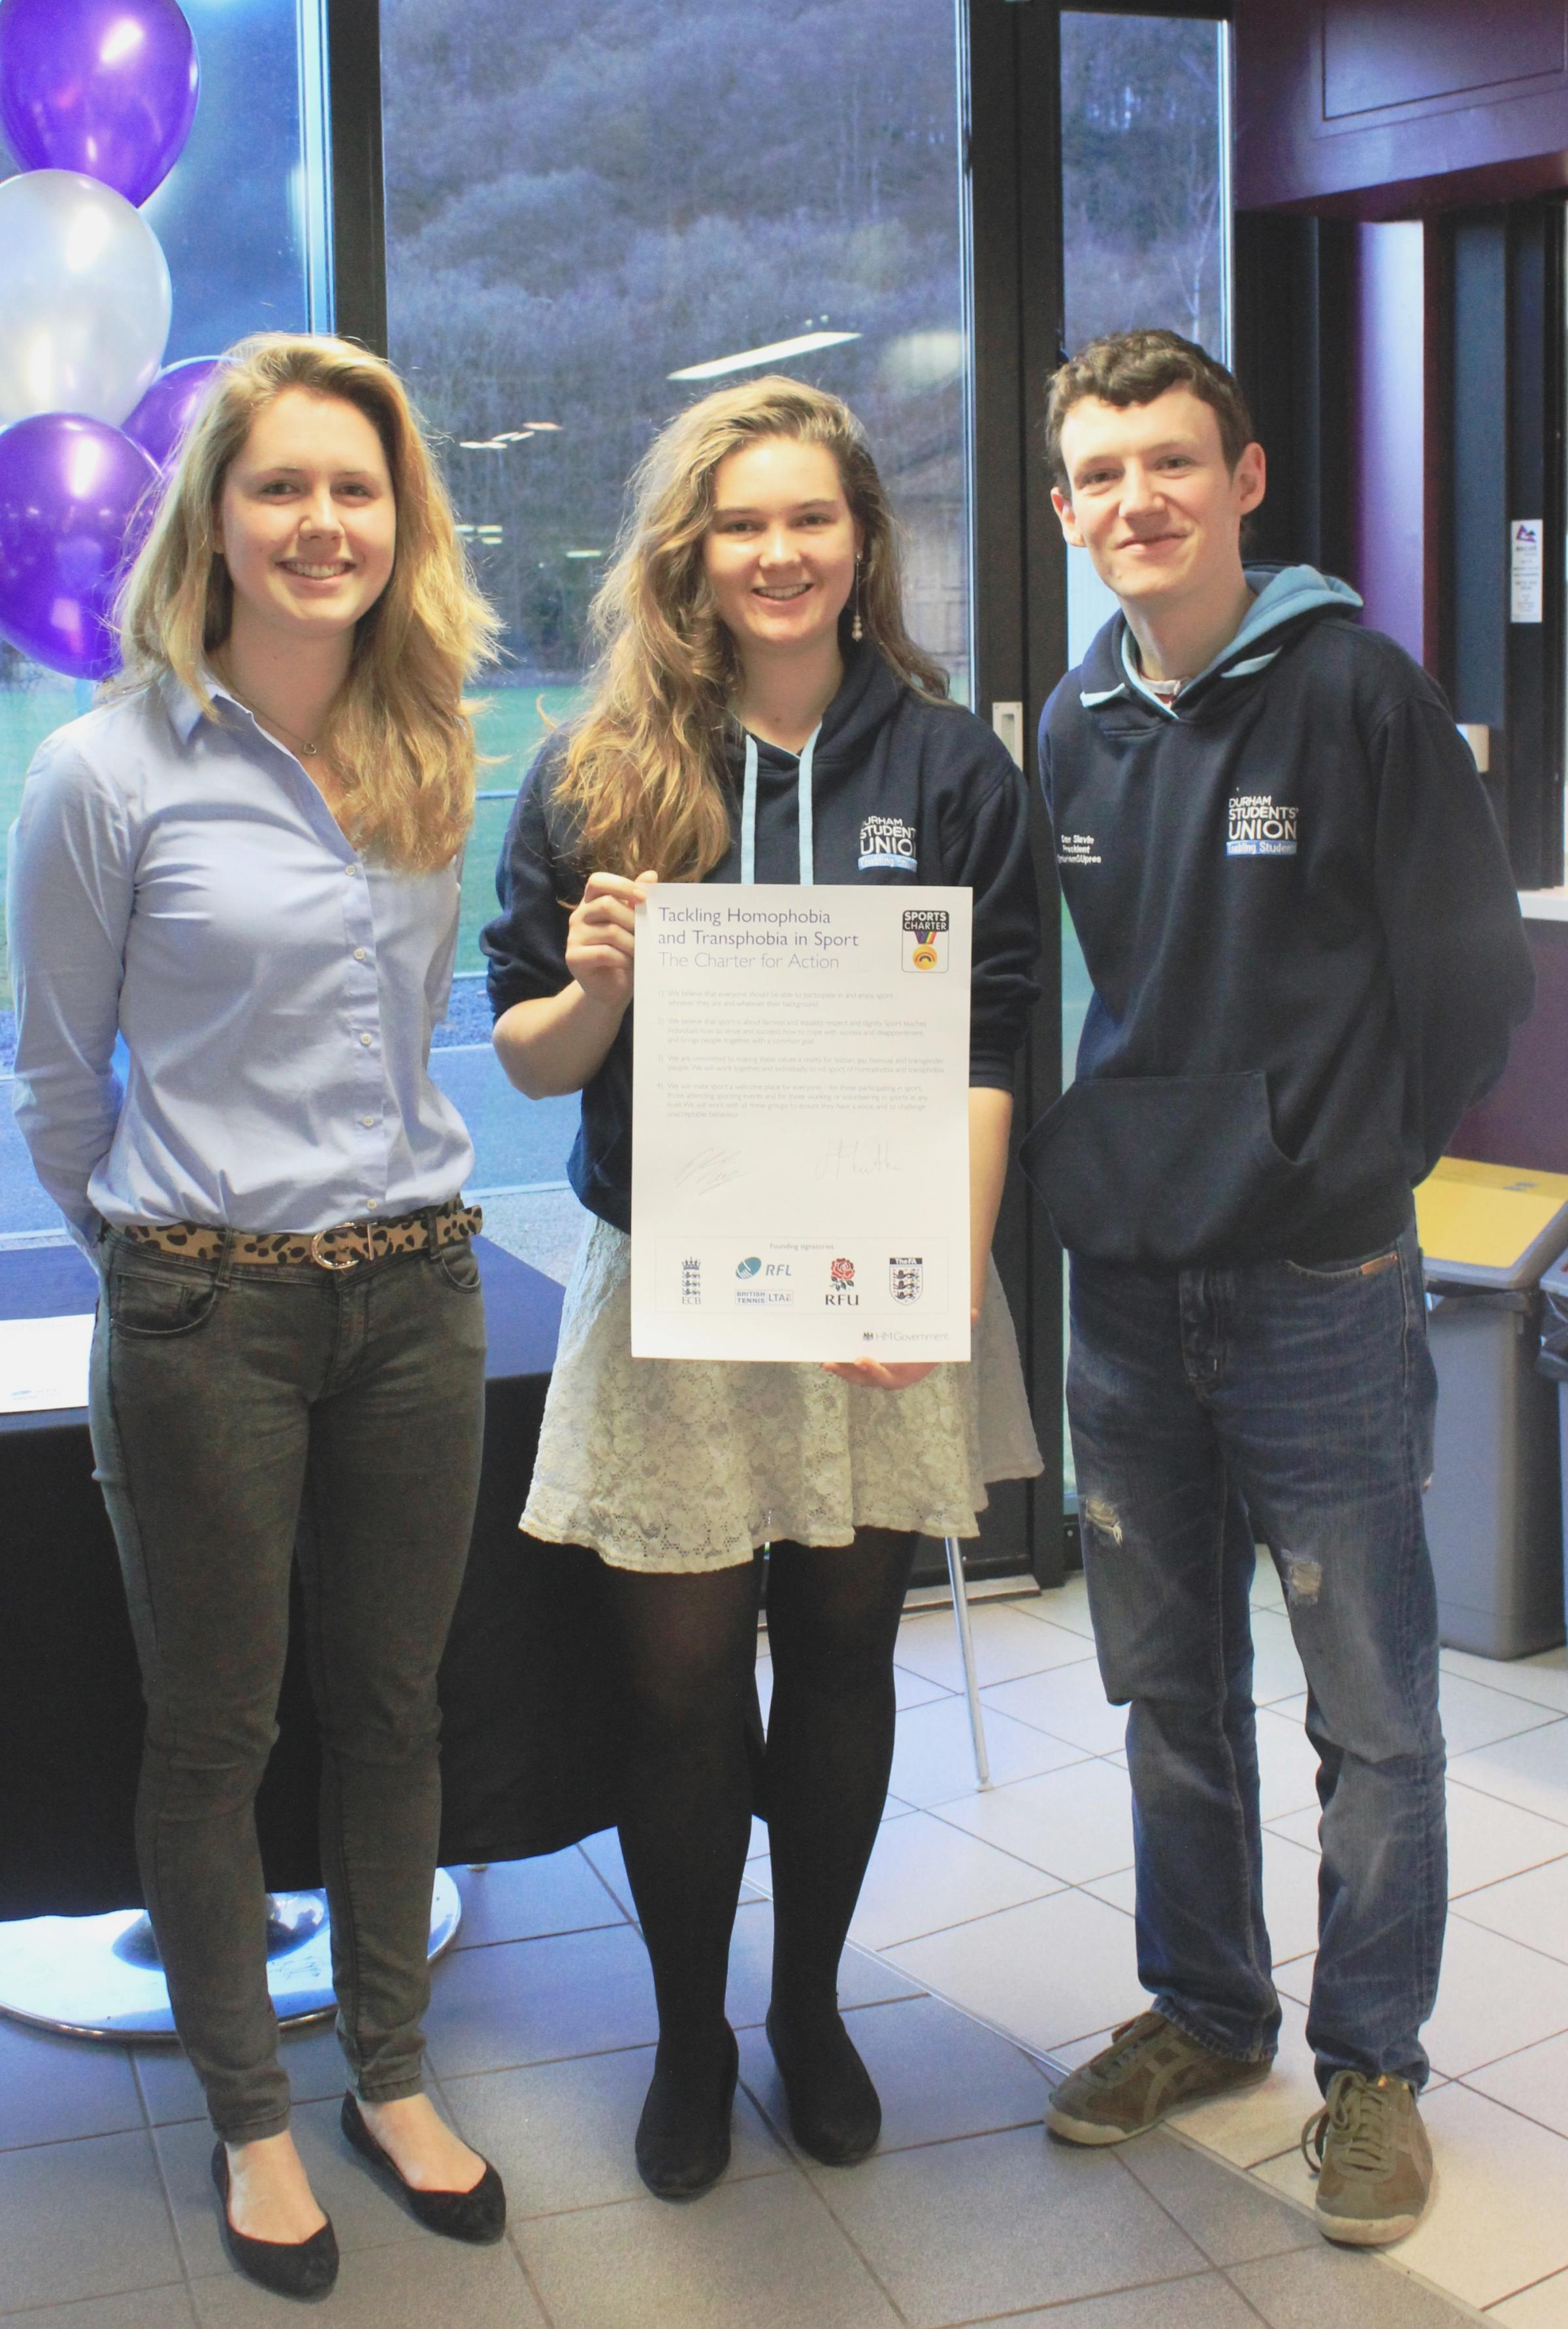 Hannah Lowther, president of Team Durham, Grace Abel, community officer at Durham Students' Union, and Dan Slavin, president of Durham Stud